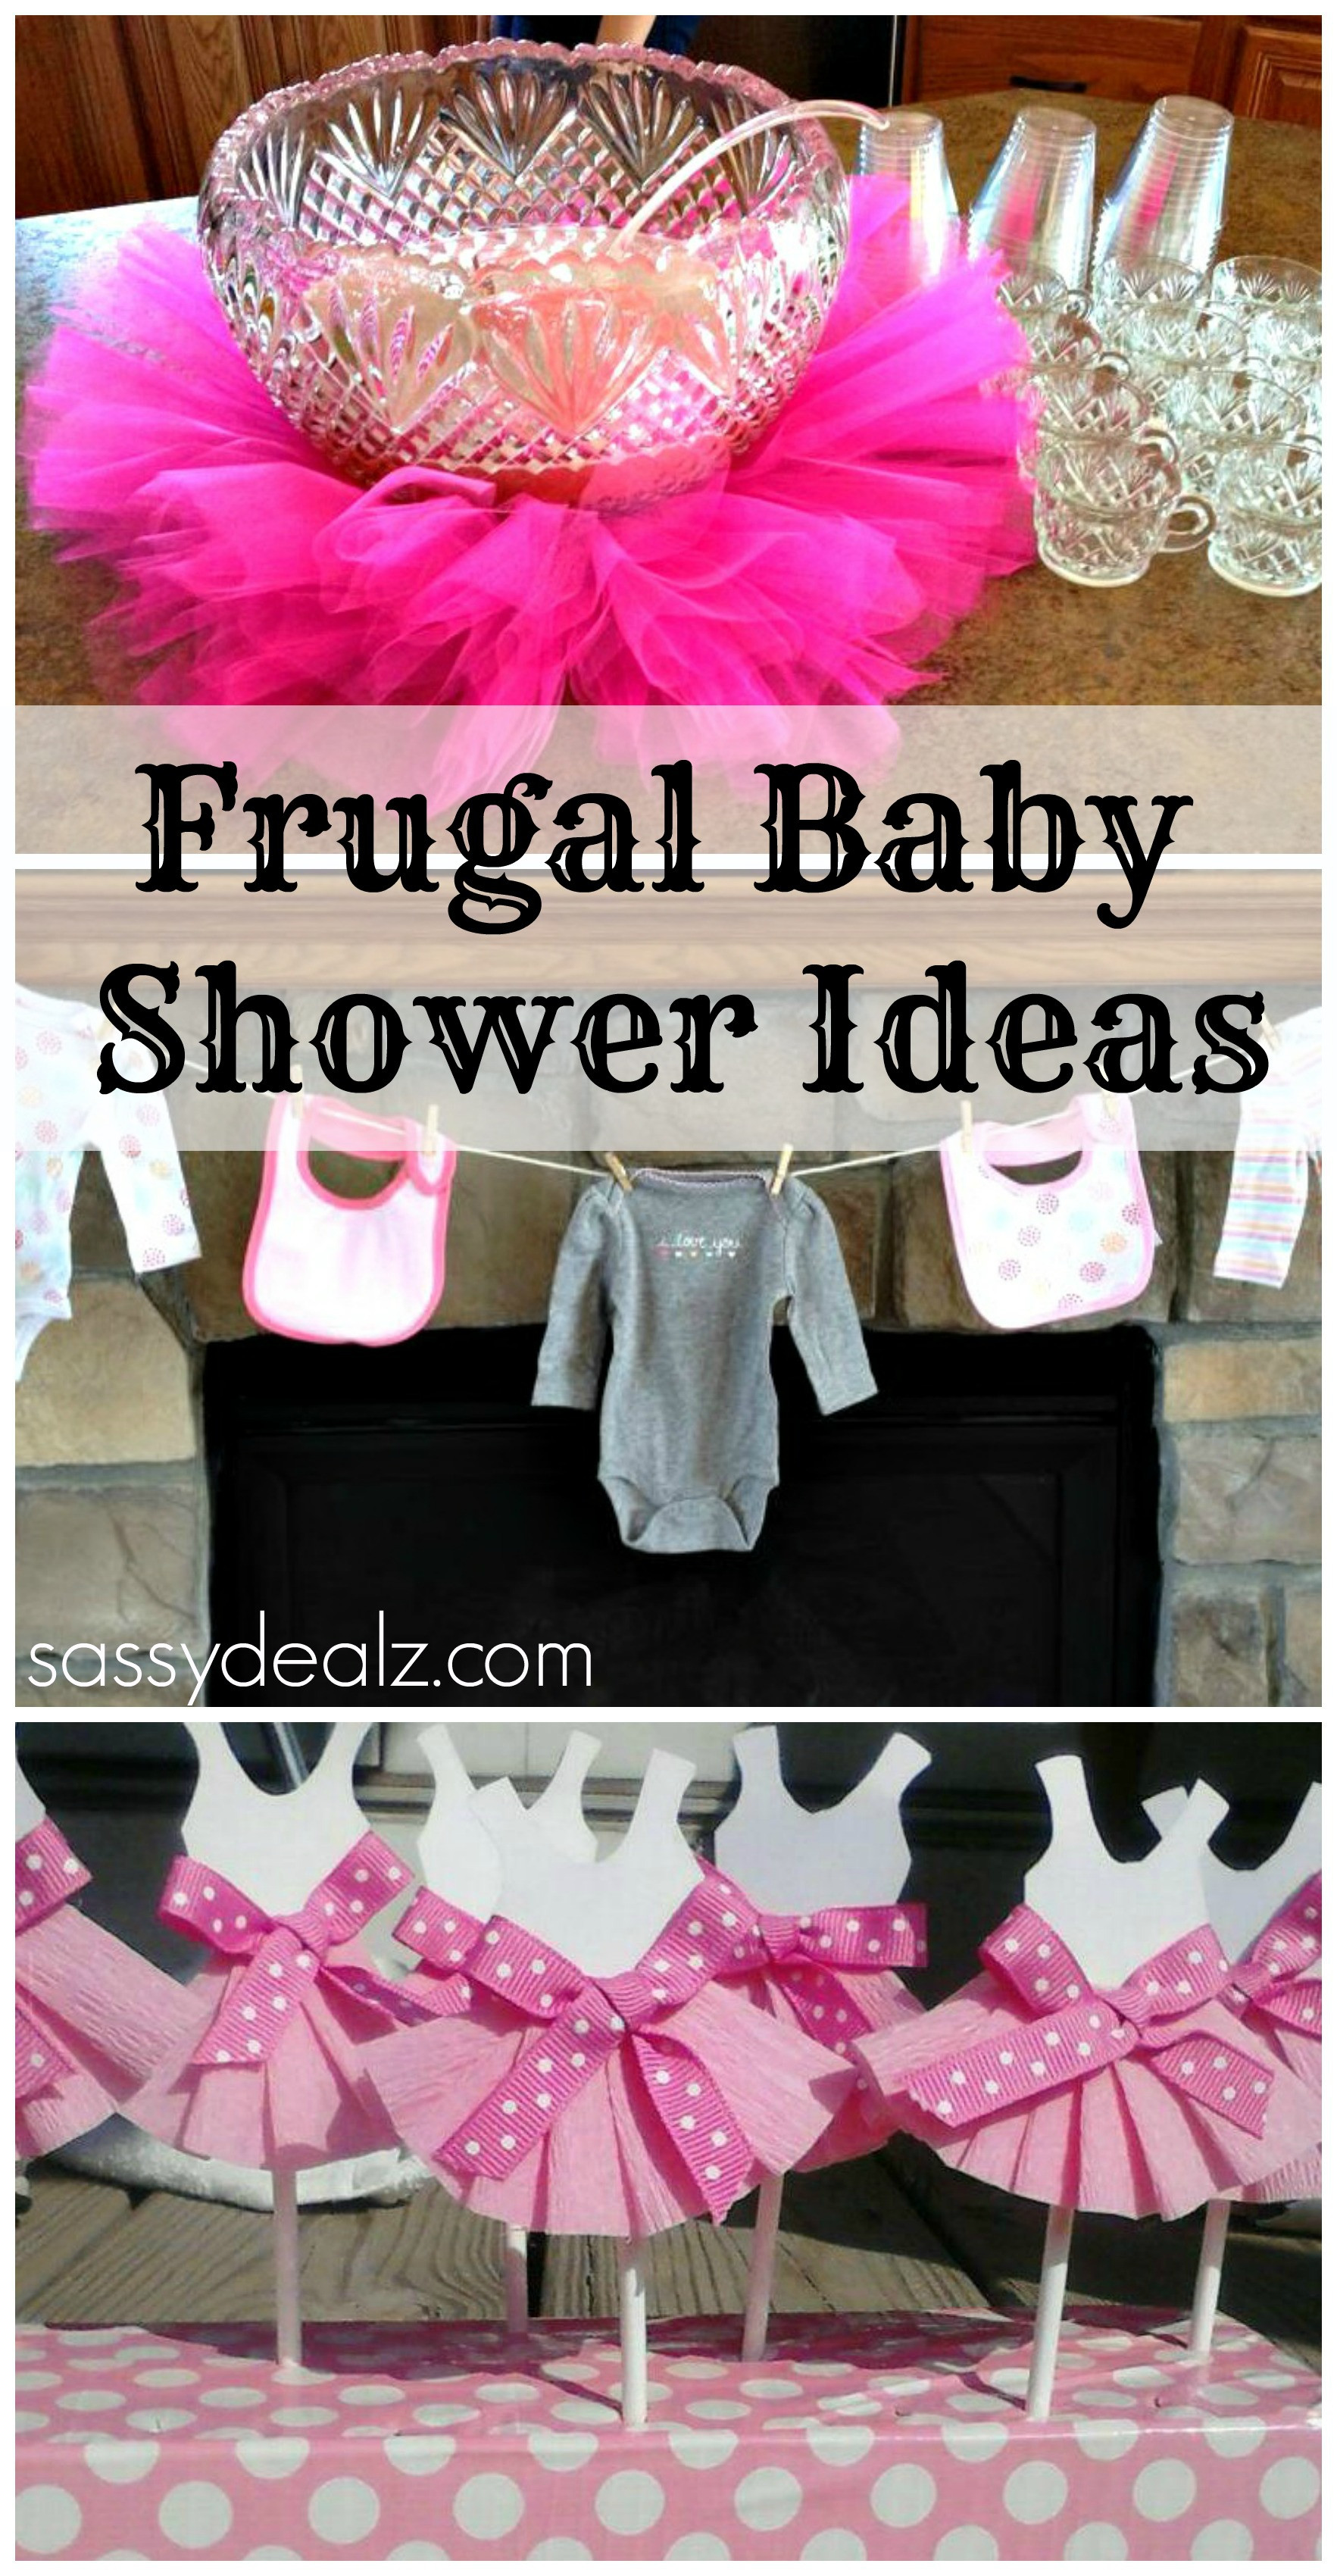 Best ideas about DIY Baby Shower Decorations On A Budget . Save or Pin Baby Girl Shower Ideas on a Bud Crafty Morning Now.